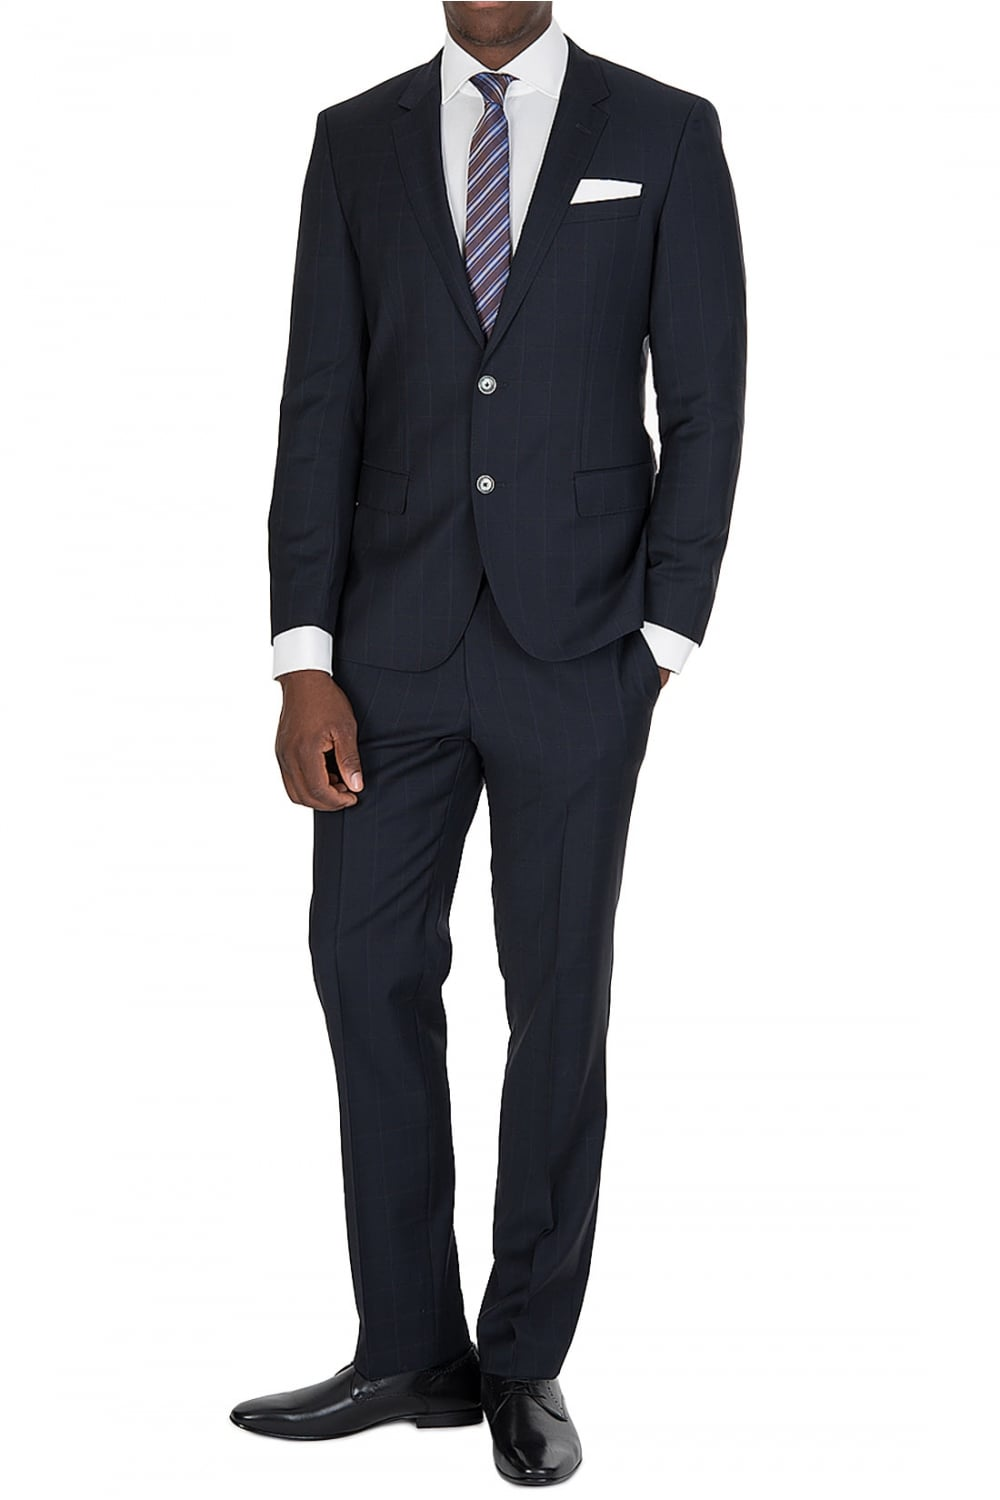 517978f62 BOSS Hugo Boss Navy Checked Suit - Clothing from Circle Fashion UK